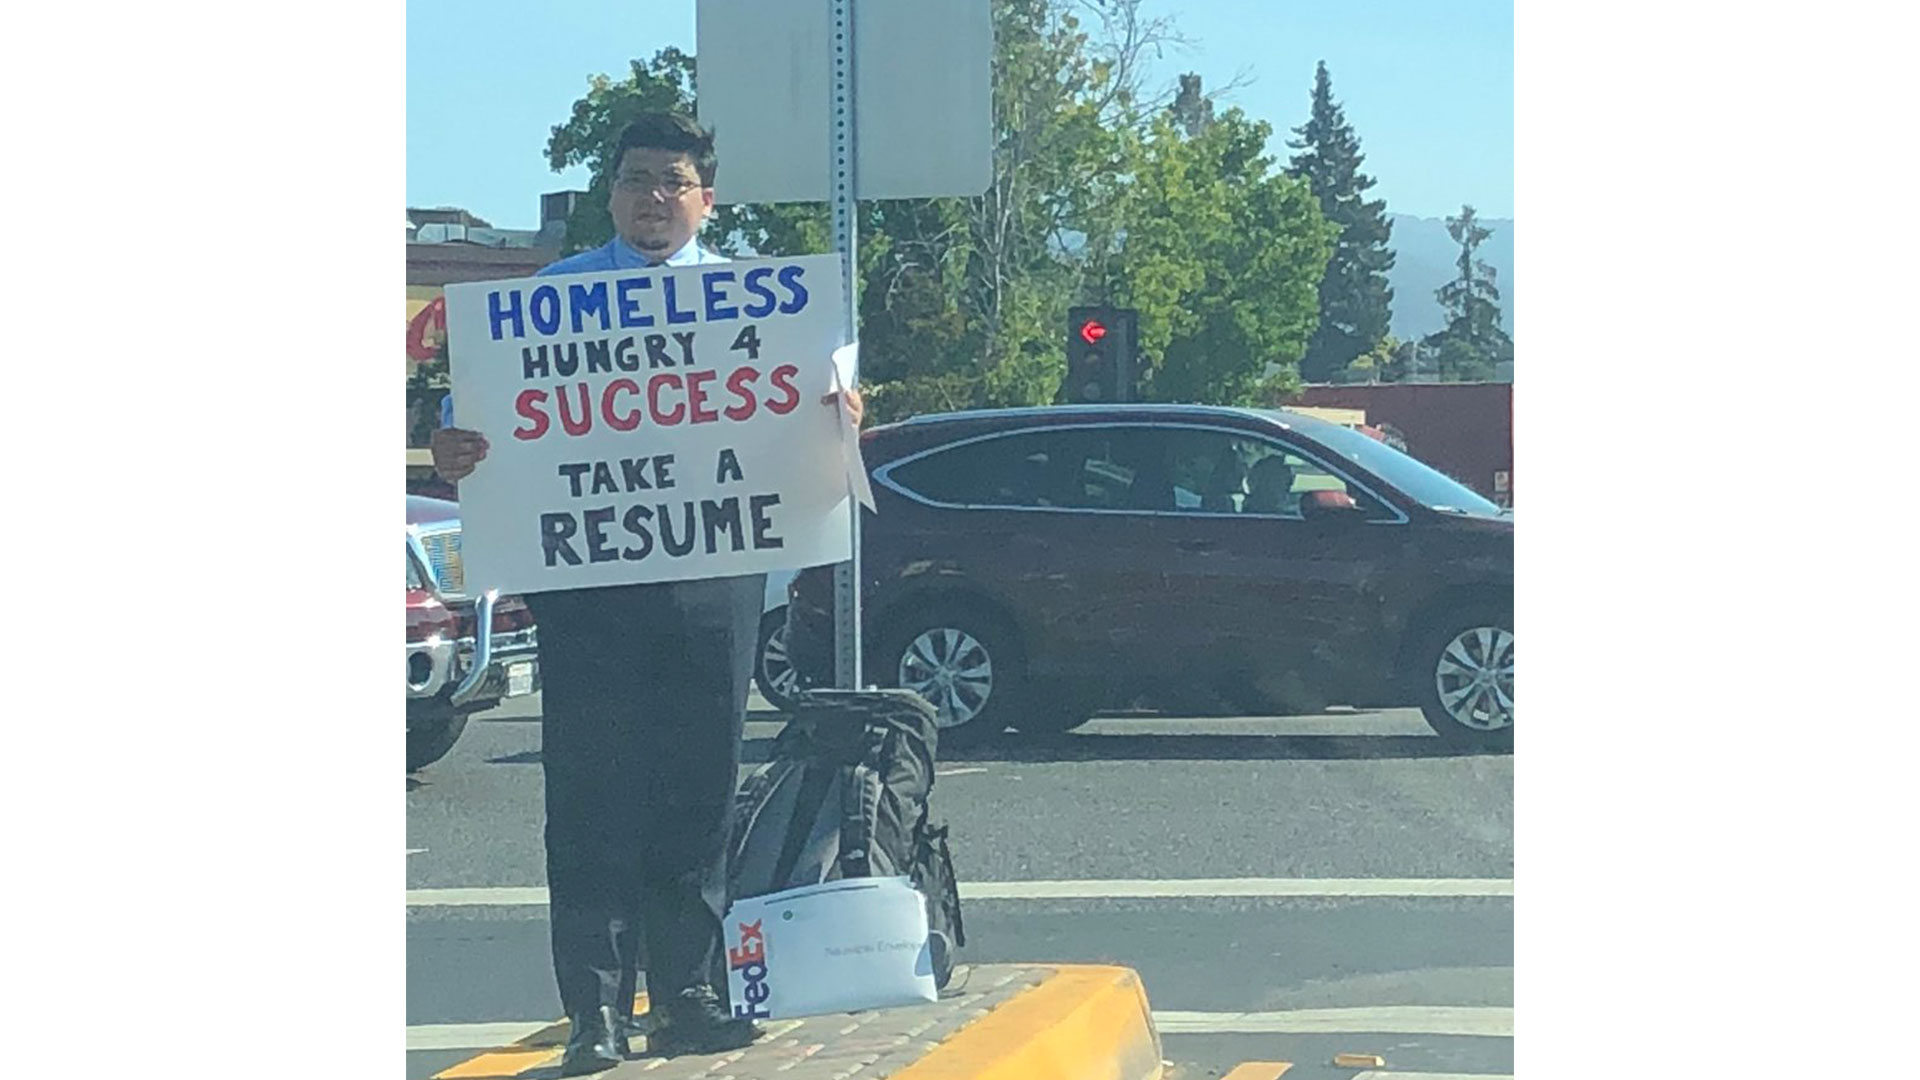 Homeless Man Hands Out Resumes